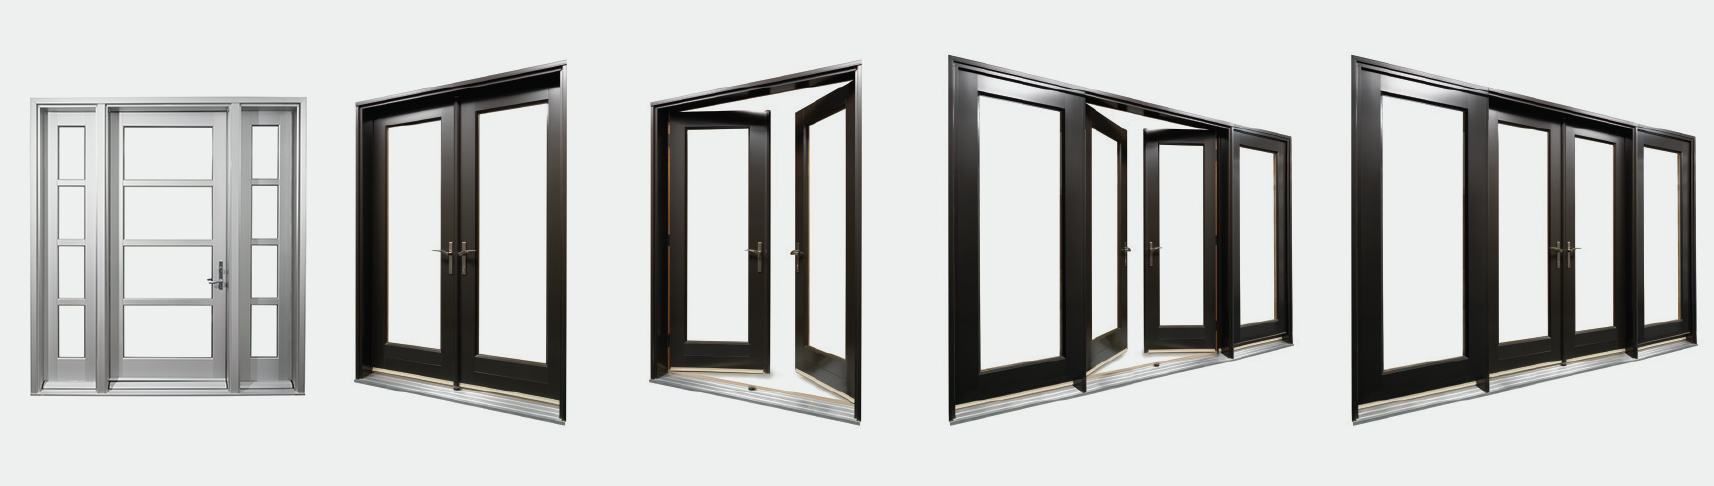 Aluminum Doors Clad Exterior Lux Windows Doors